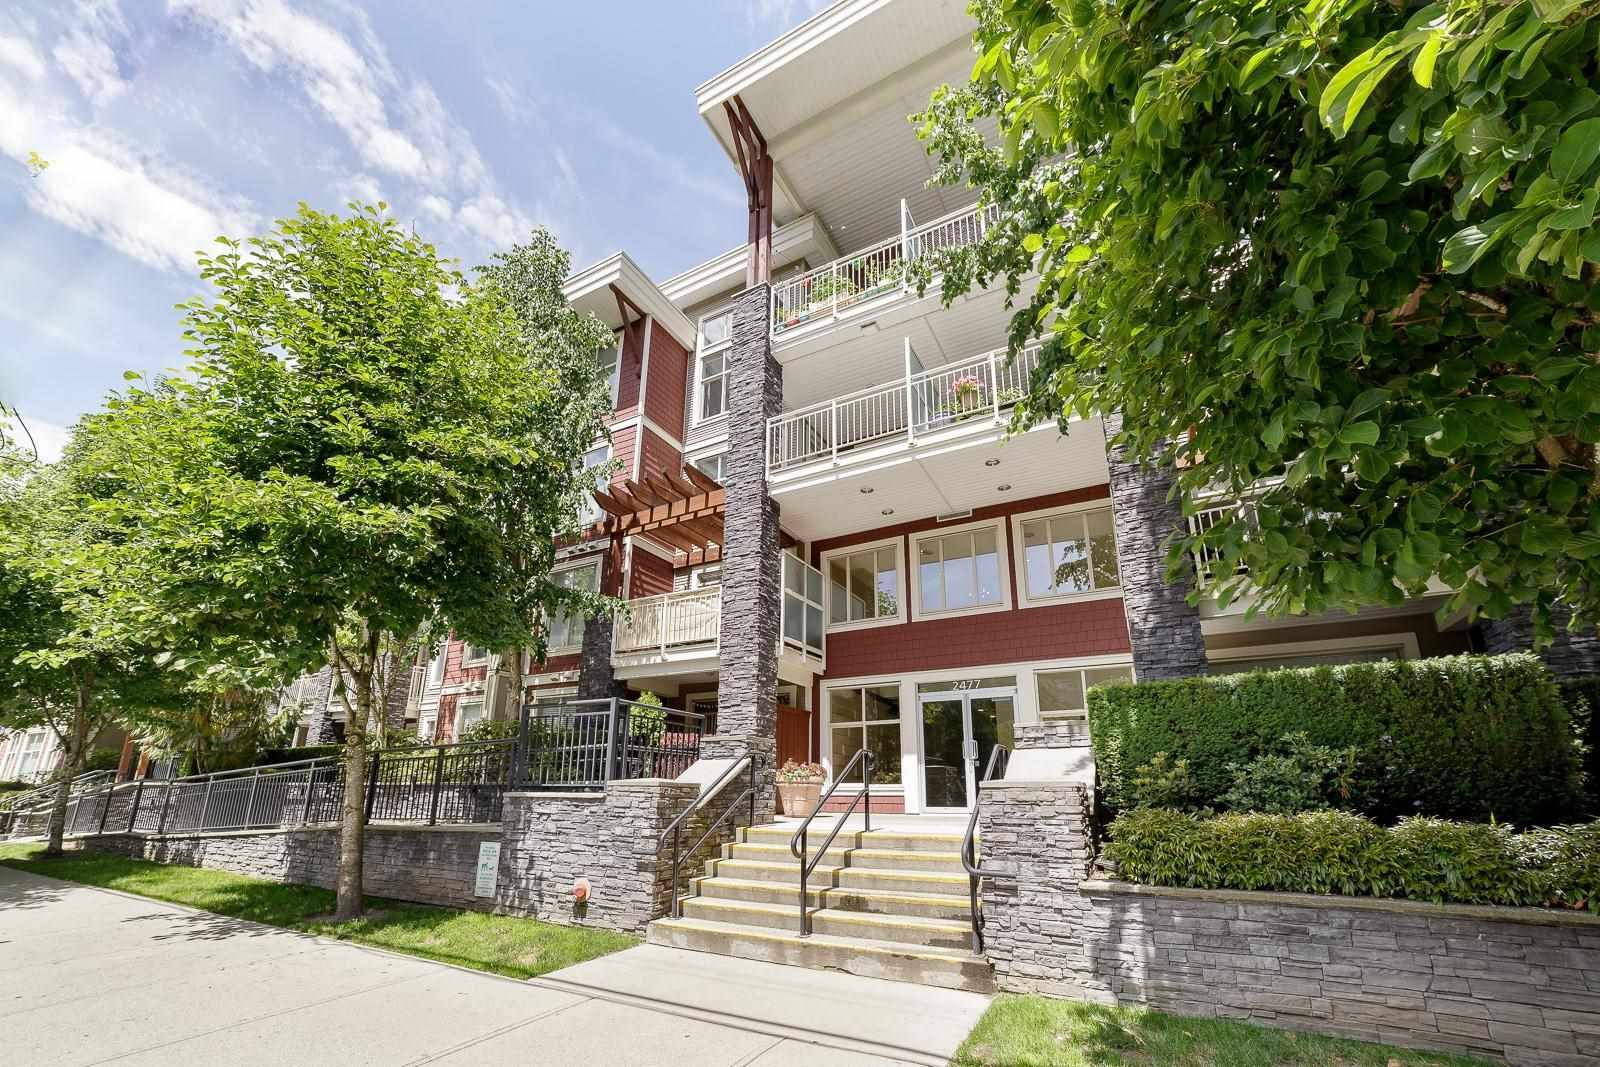 """Main Photo: 214 2477 KELLY Avenue in Port Coquitlam: Central Pt Coquitlam Condo for sale in """"SOUTH VERDE"""" : MLS®# R2595466"""